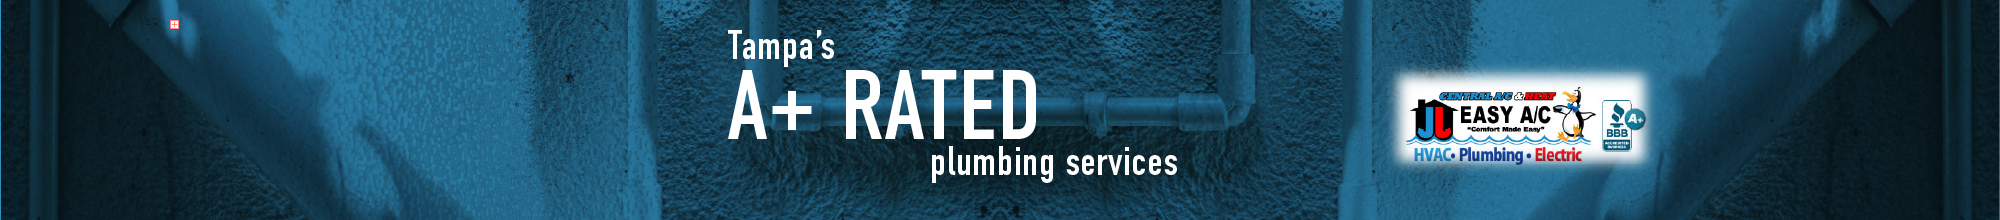 24 Hour Plumbing Services in Tampa, FL